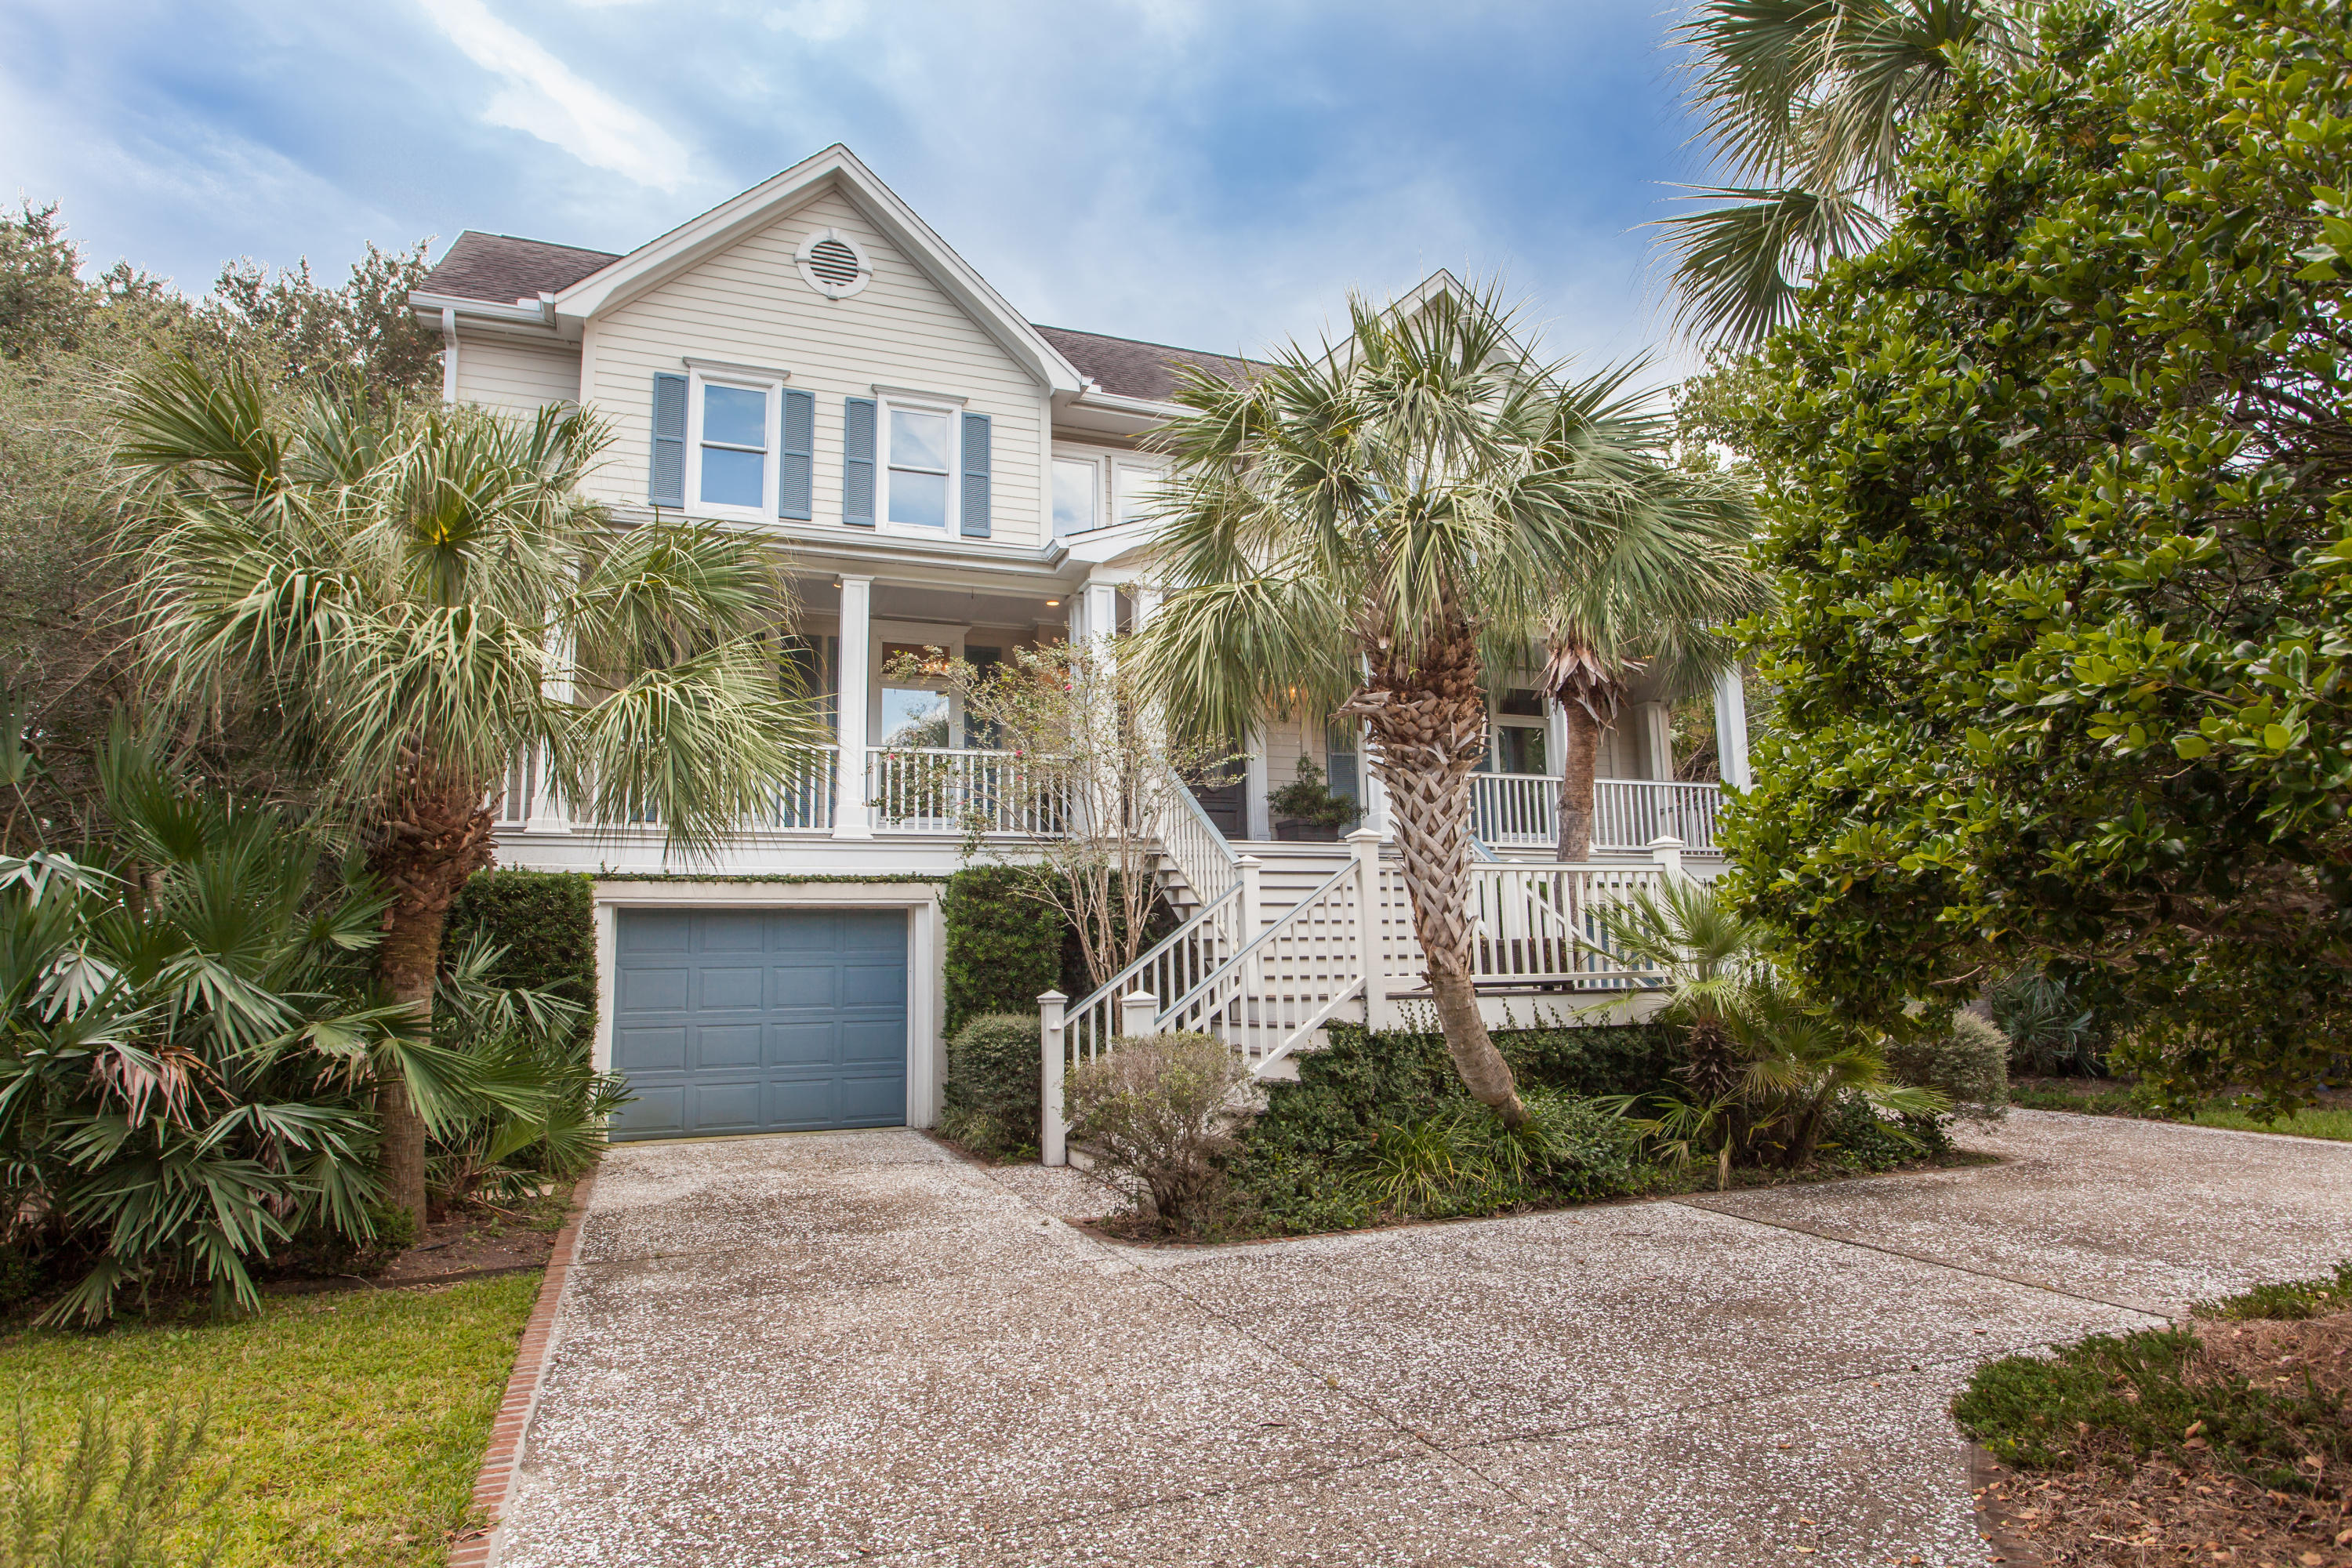 Photo of 76 On the Harbor Dr, Mt Pleasant, SC 29464